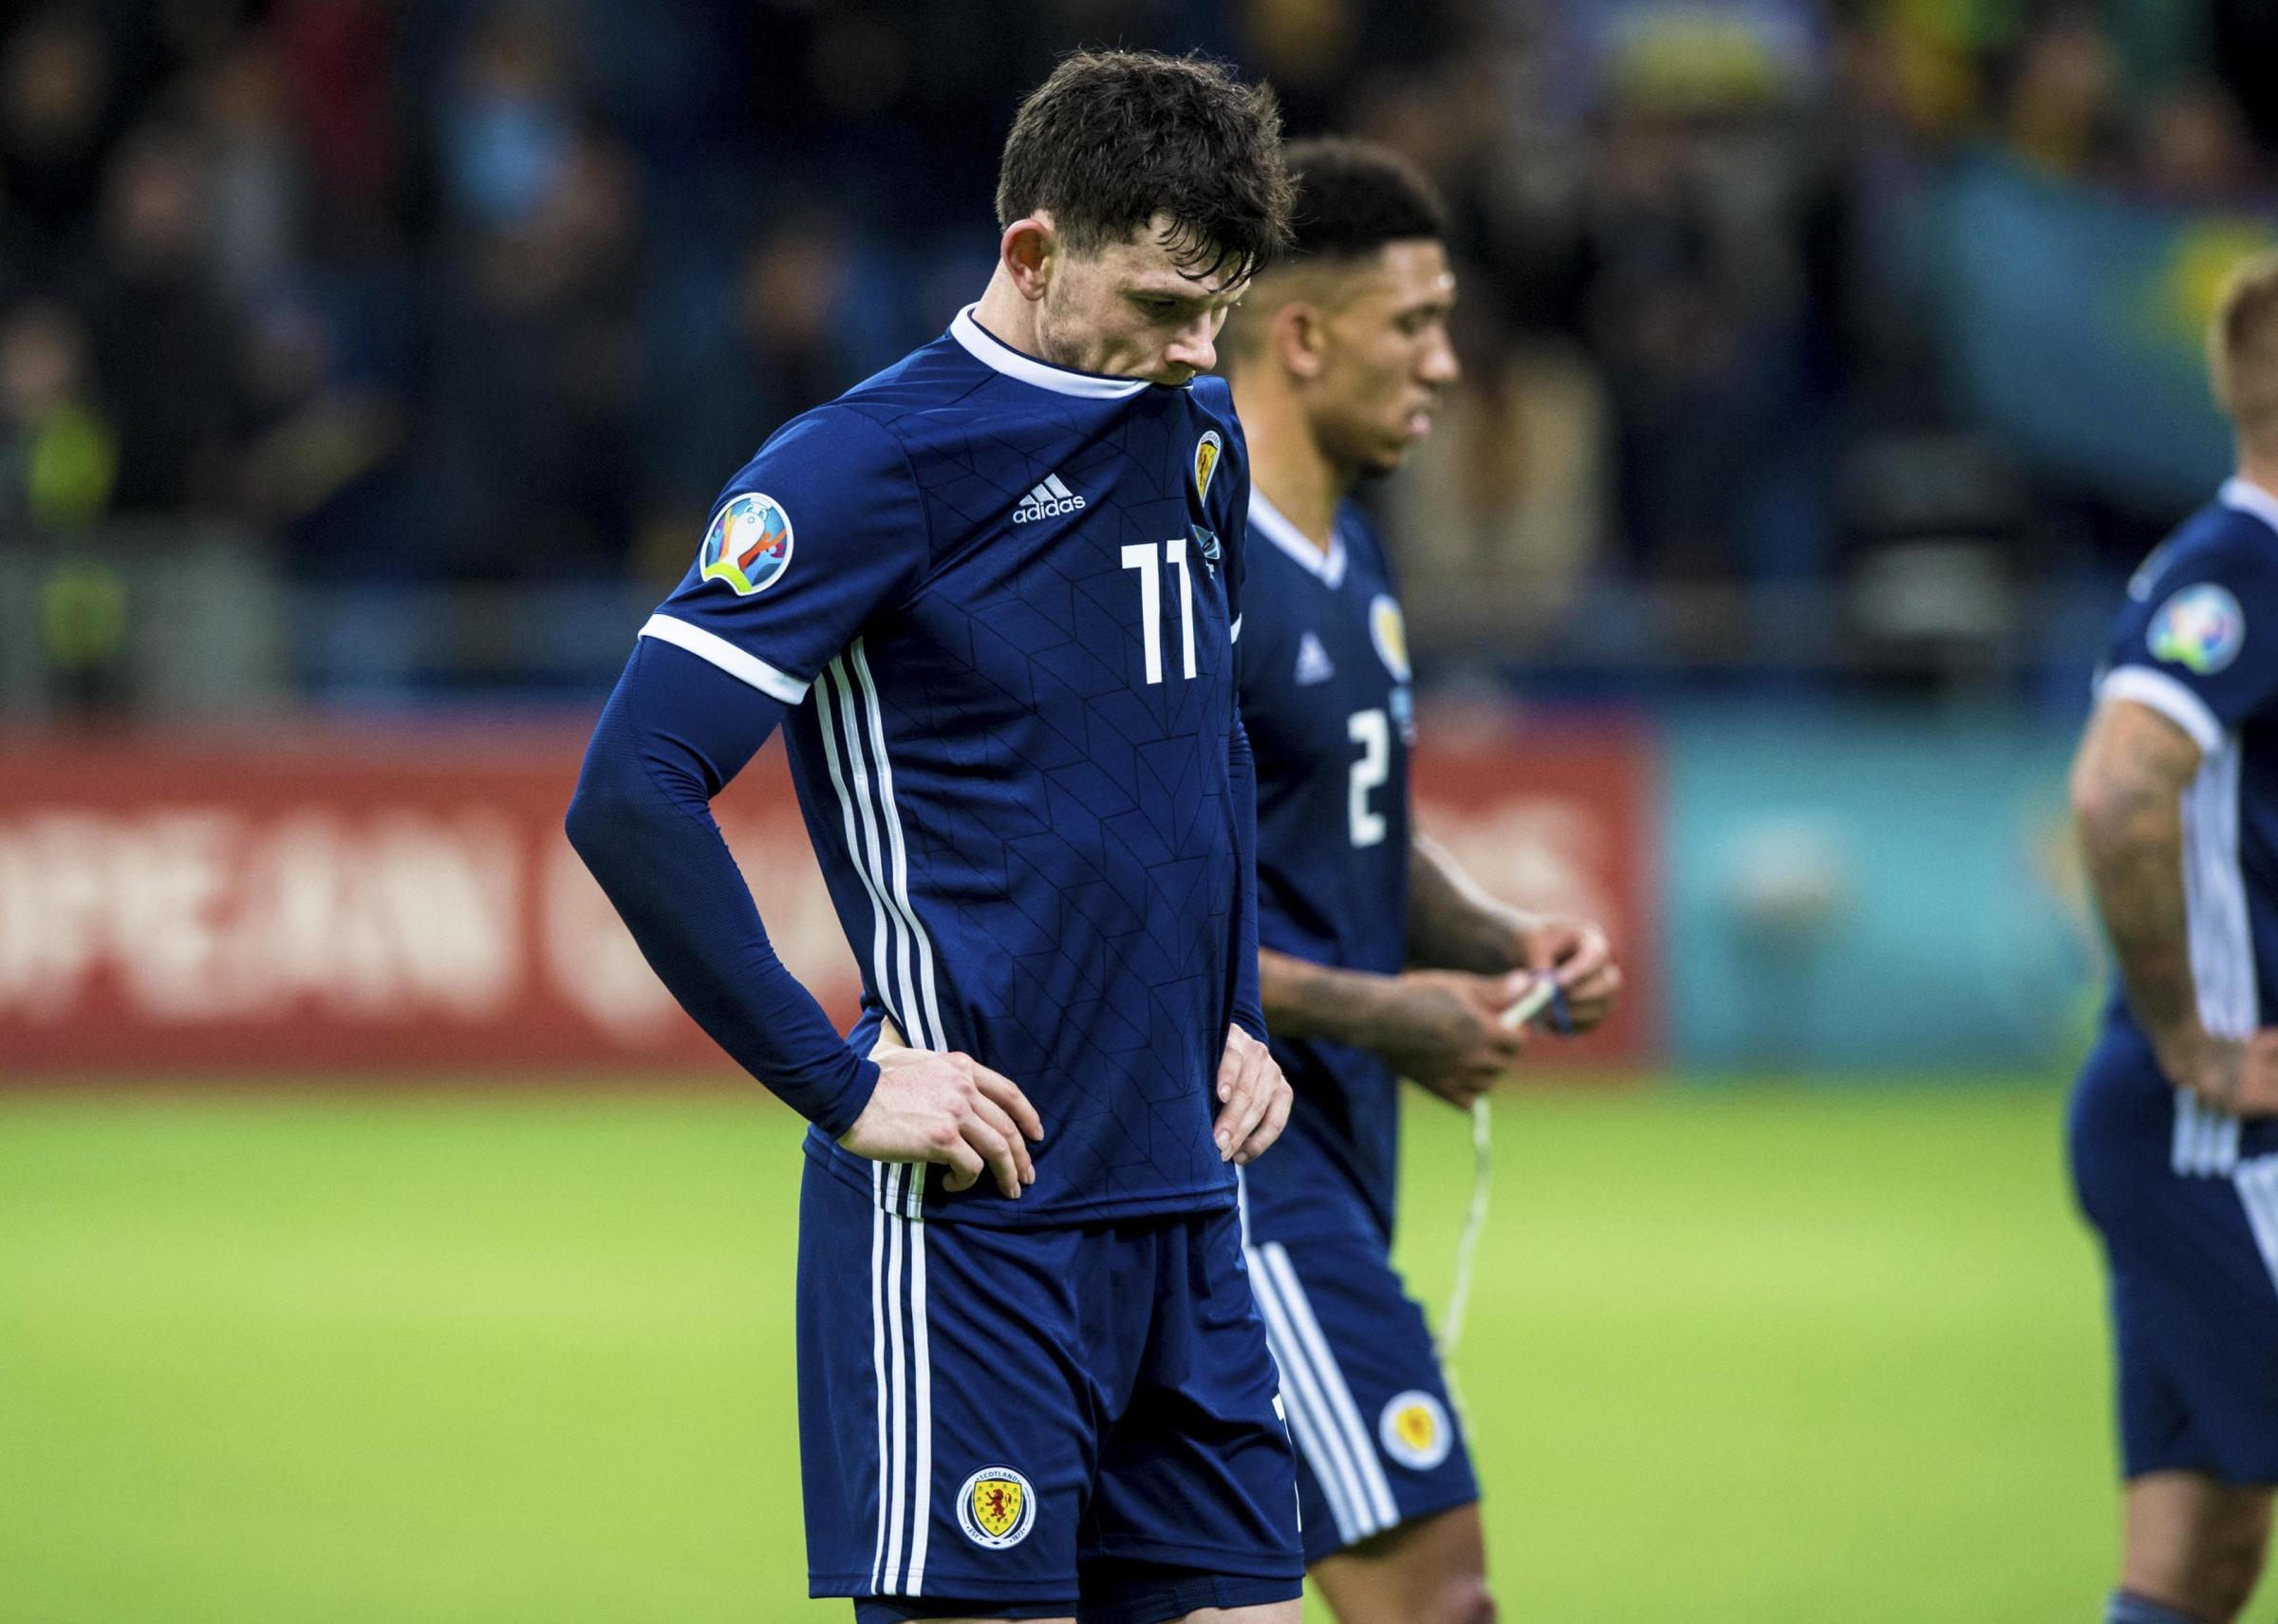 Oliver Burke: Scotland's players failed to carry out Alex McLeish's game plan - blame us not him